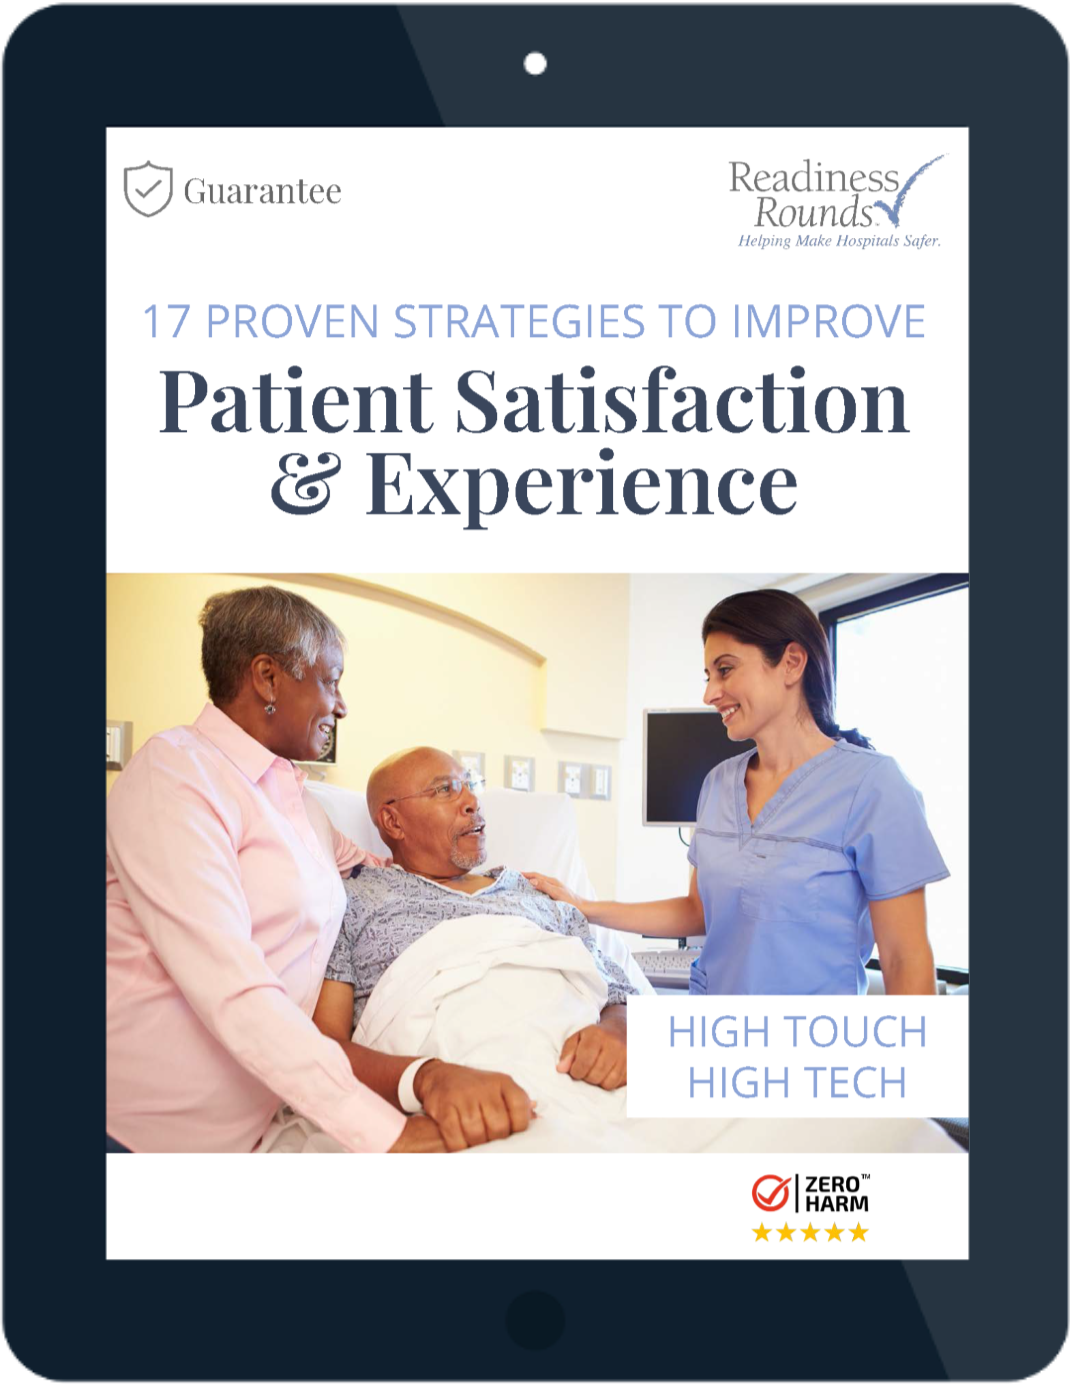 COVER-iPad_17 Proven Strategies to Improve Patient Satisfaction and Experience eBook_v2